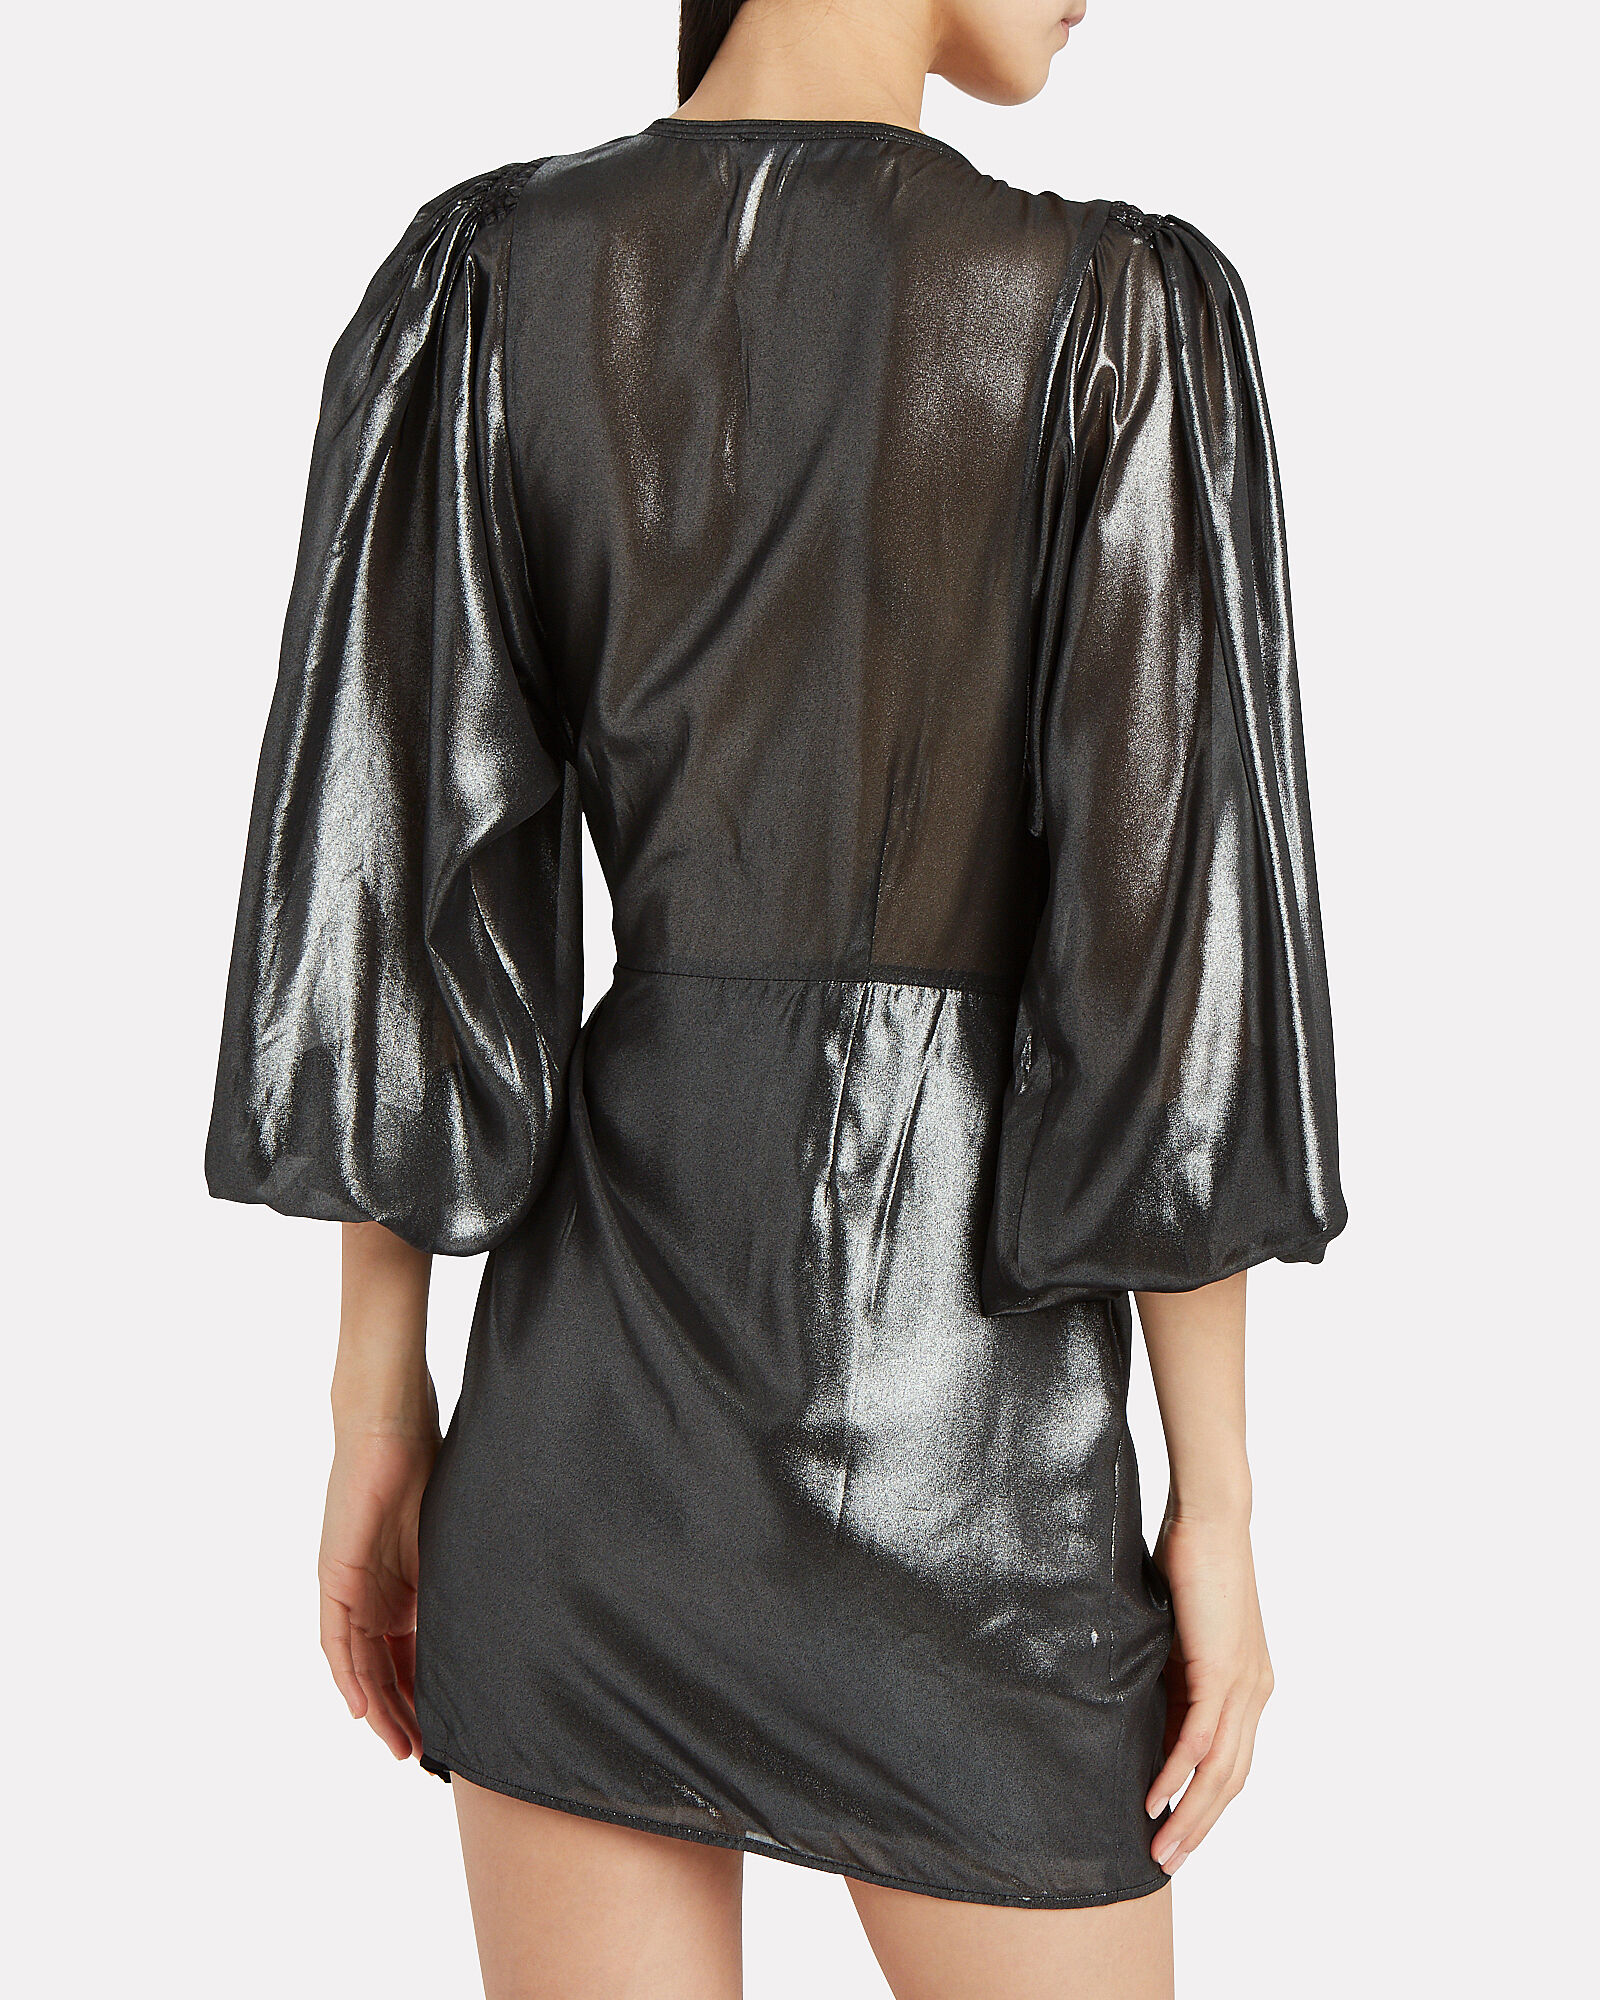 Hanny Metallic Chiffon Wrap Dress, BLACK, hi-res